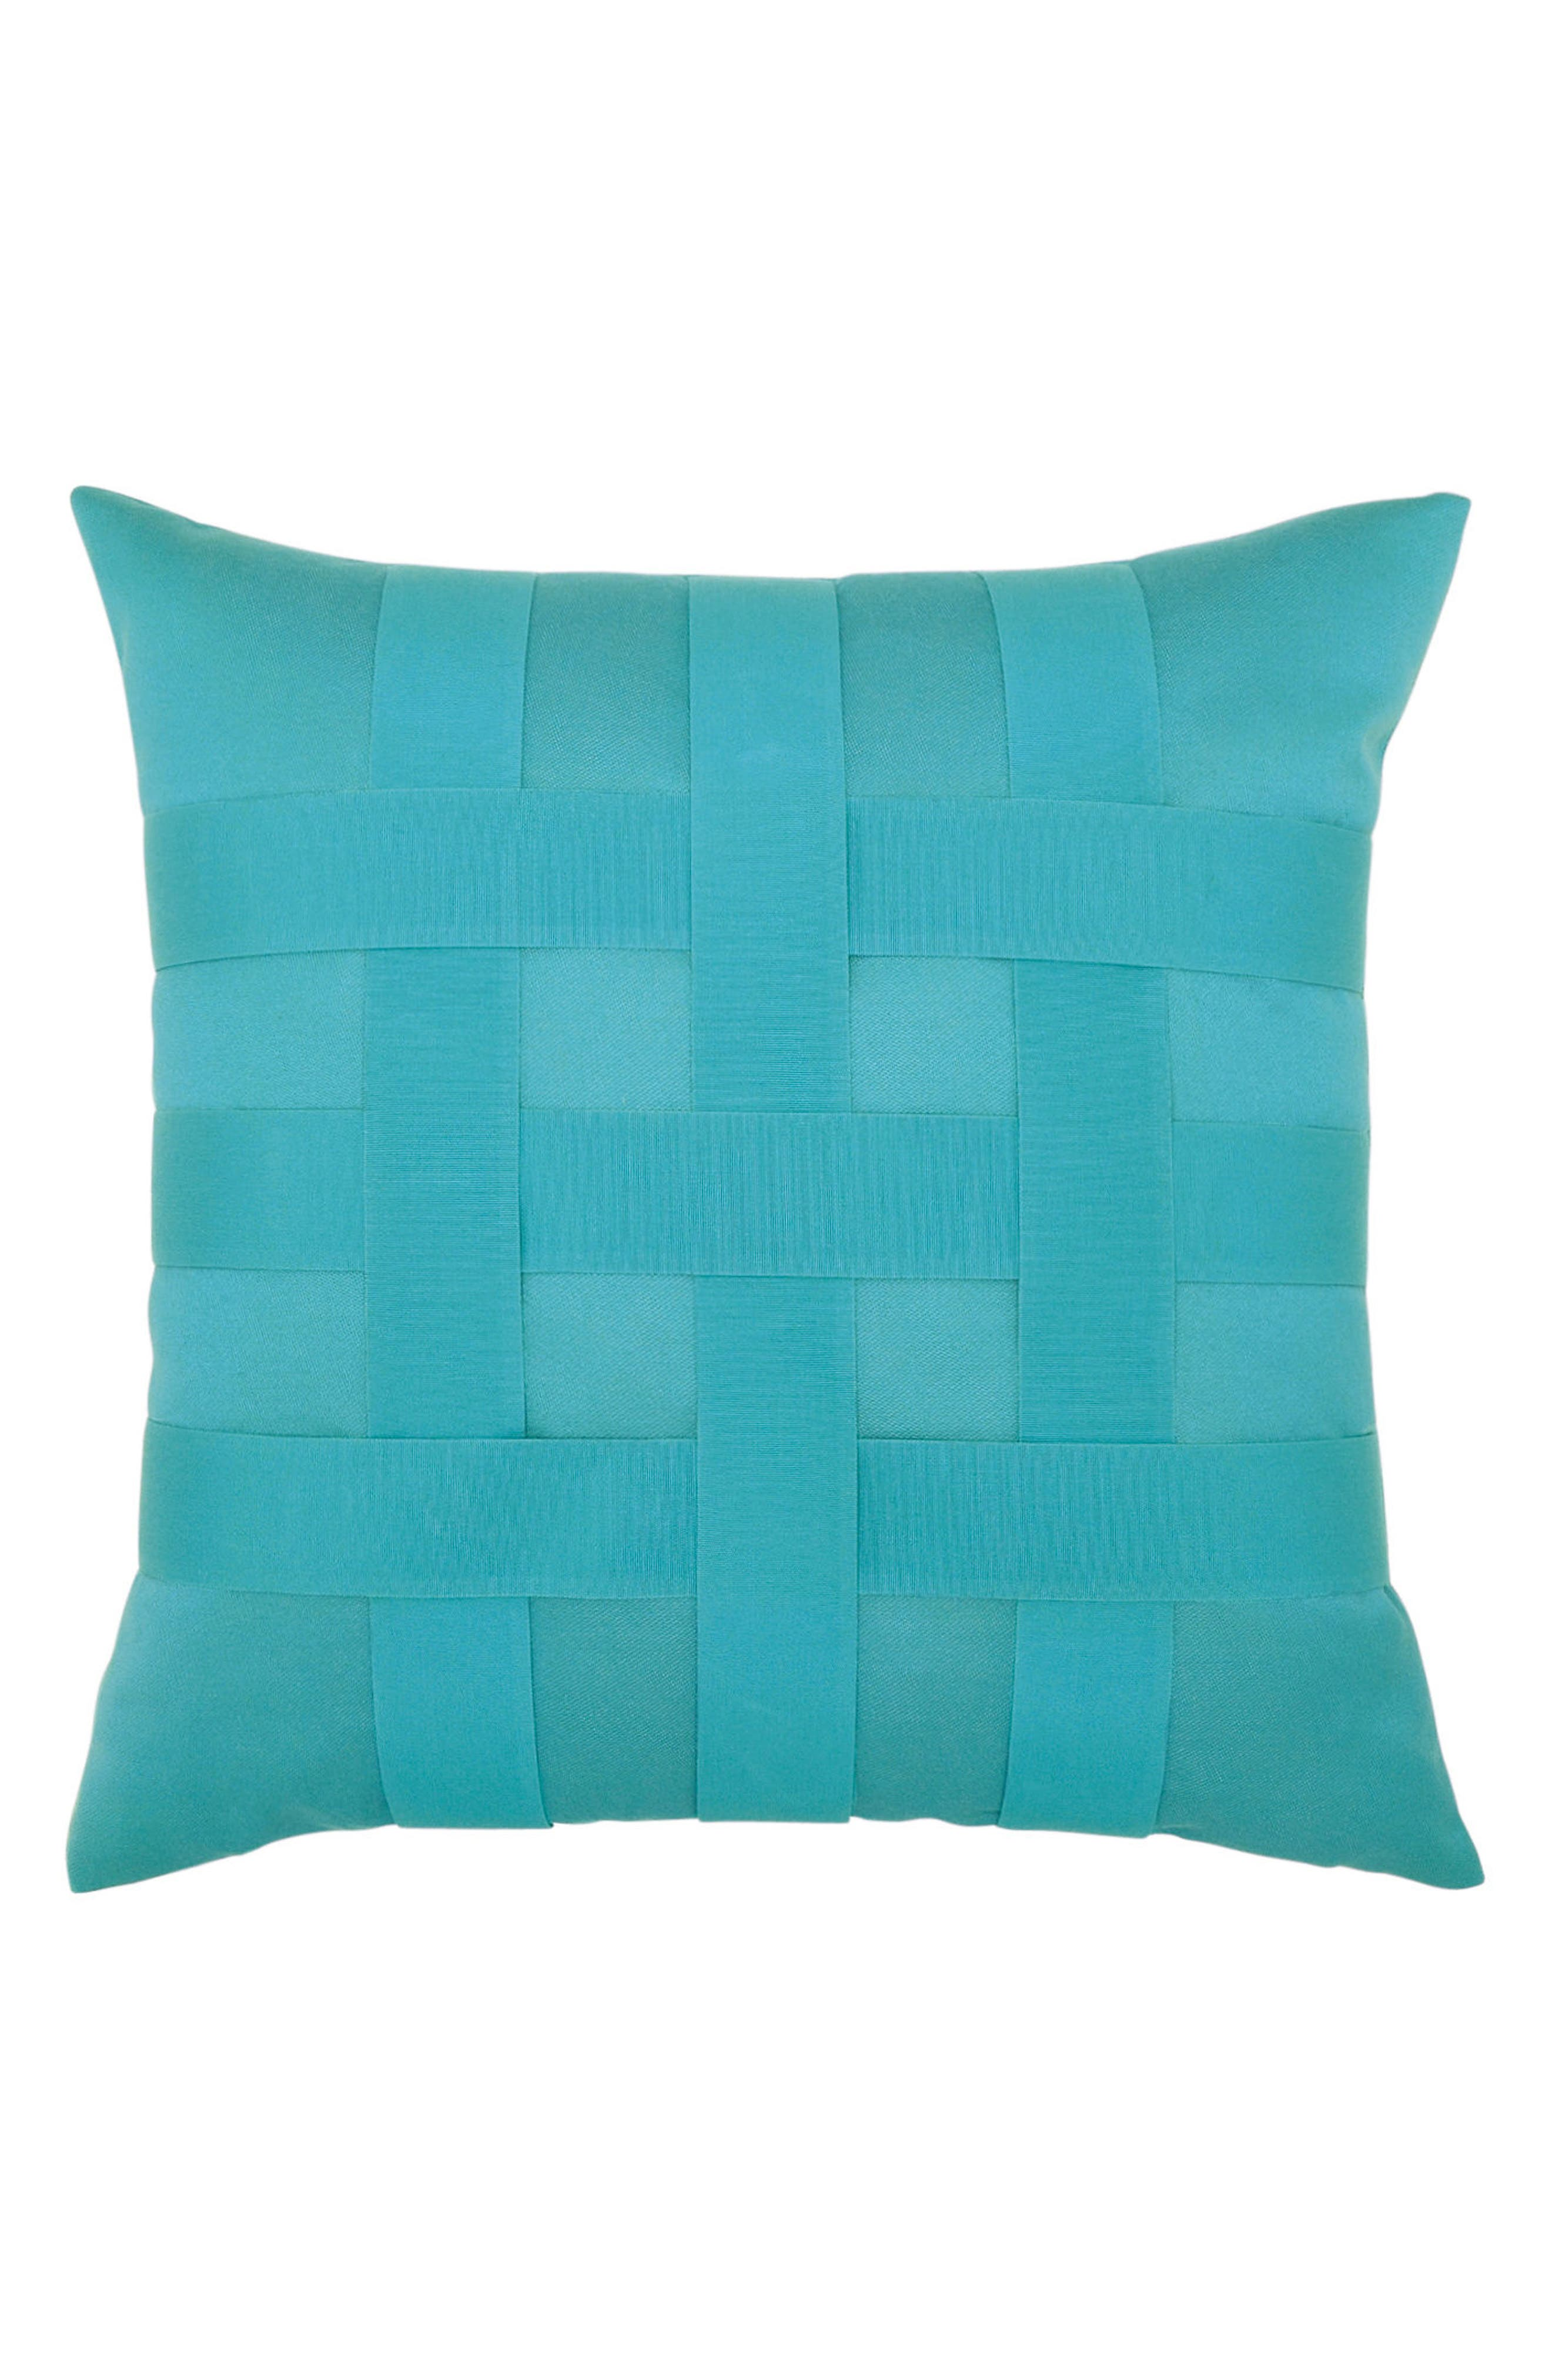 Basket Weave Indoor/Outdoor Accent Pillow,                             Main thumbnail 1, color,                             Blue